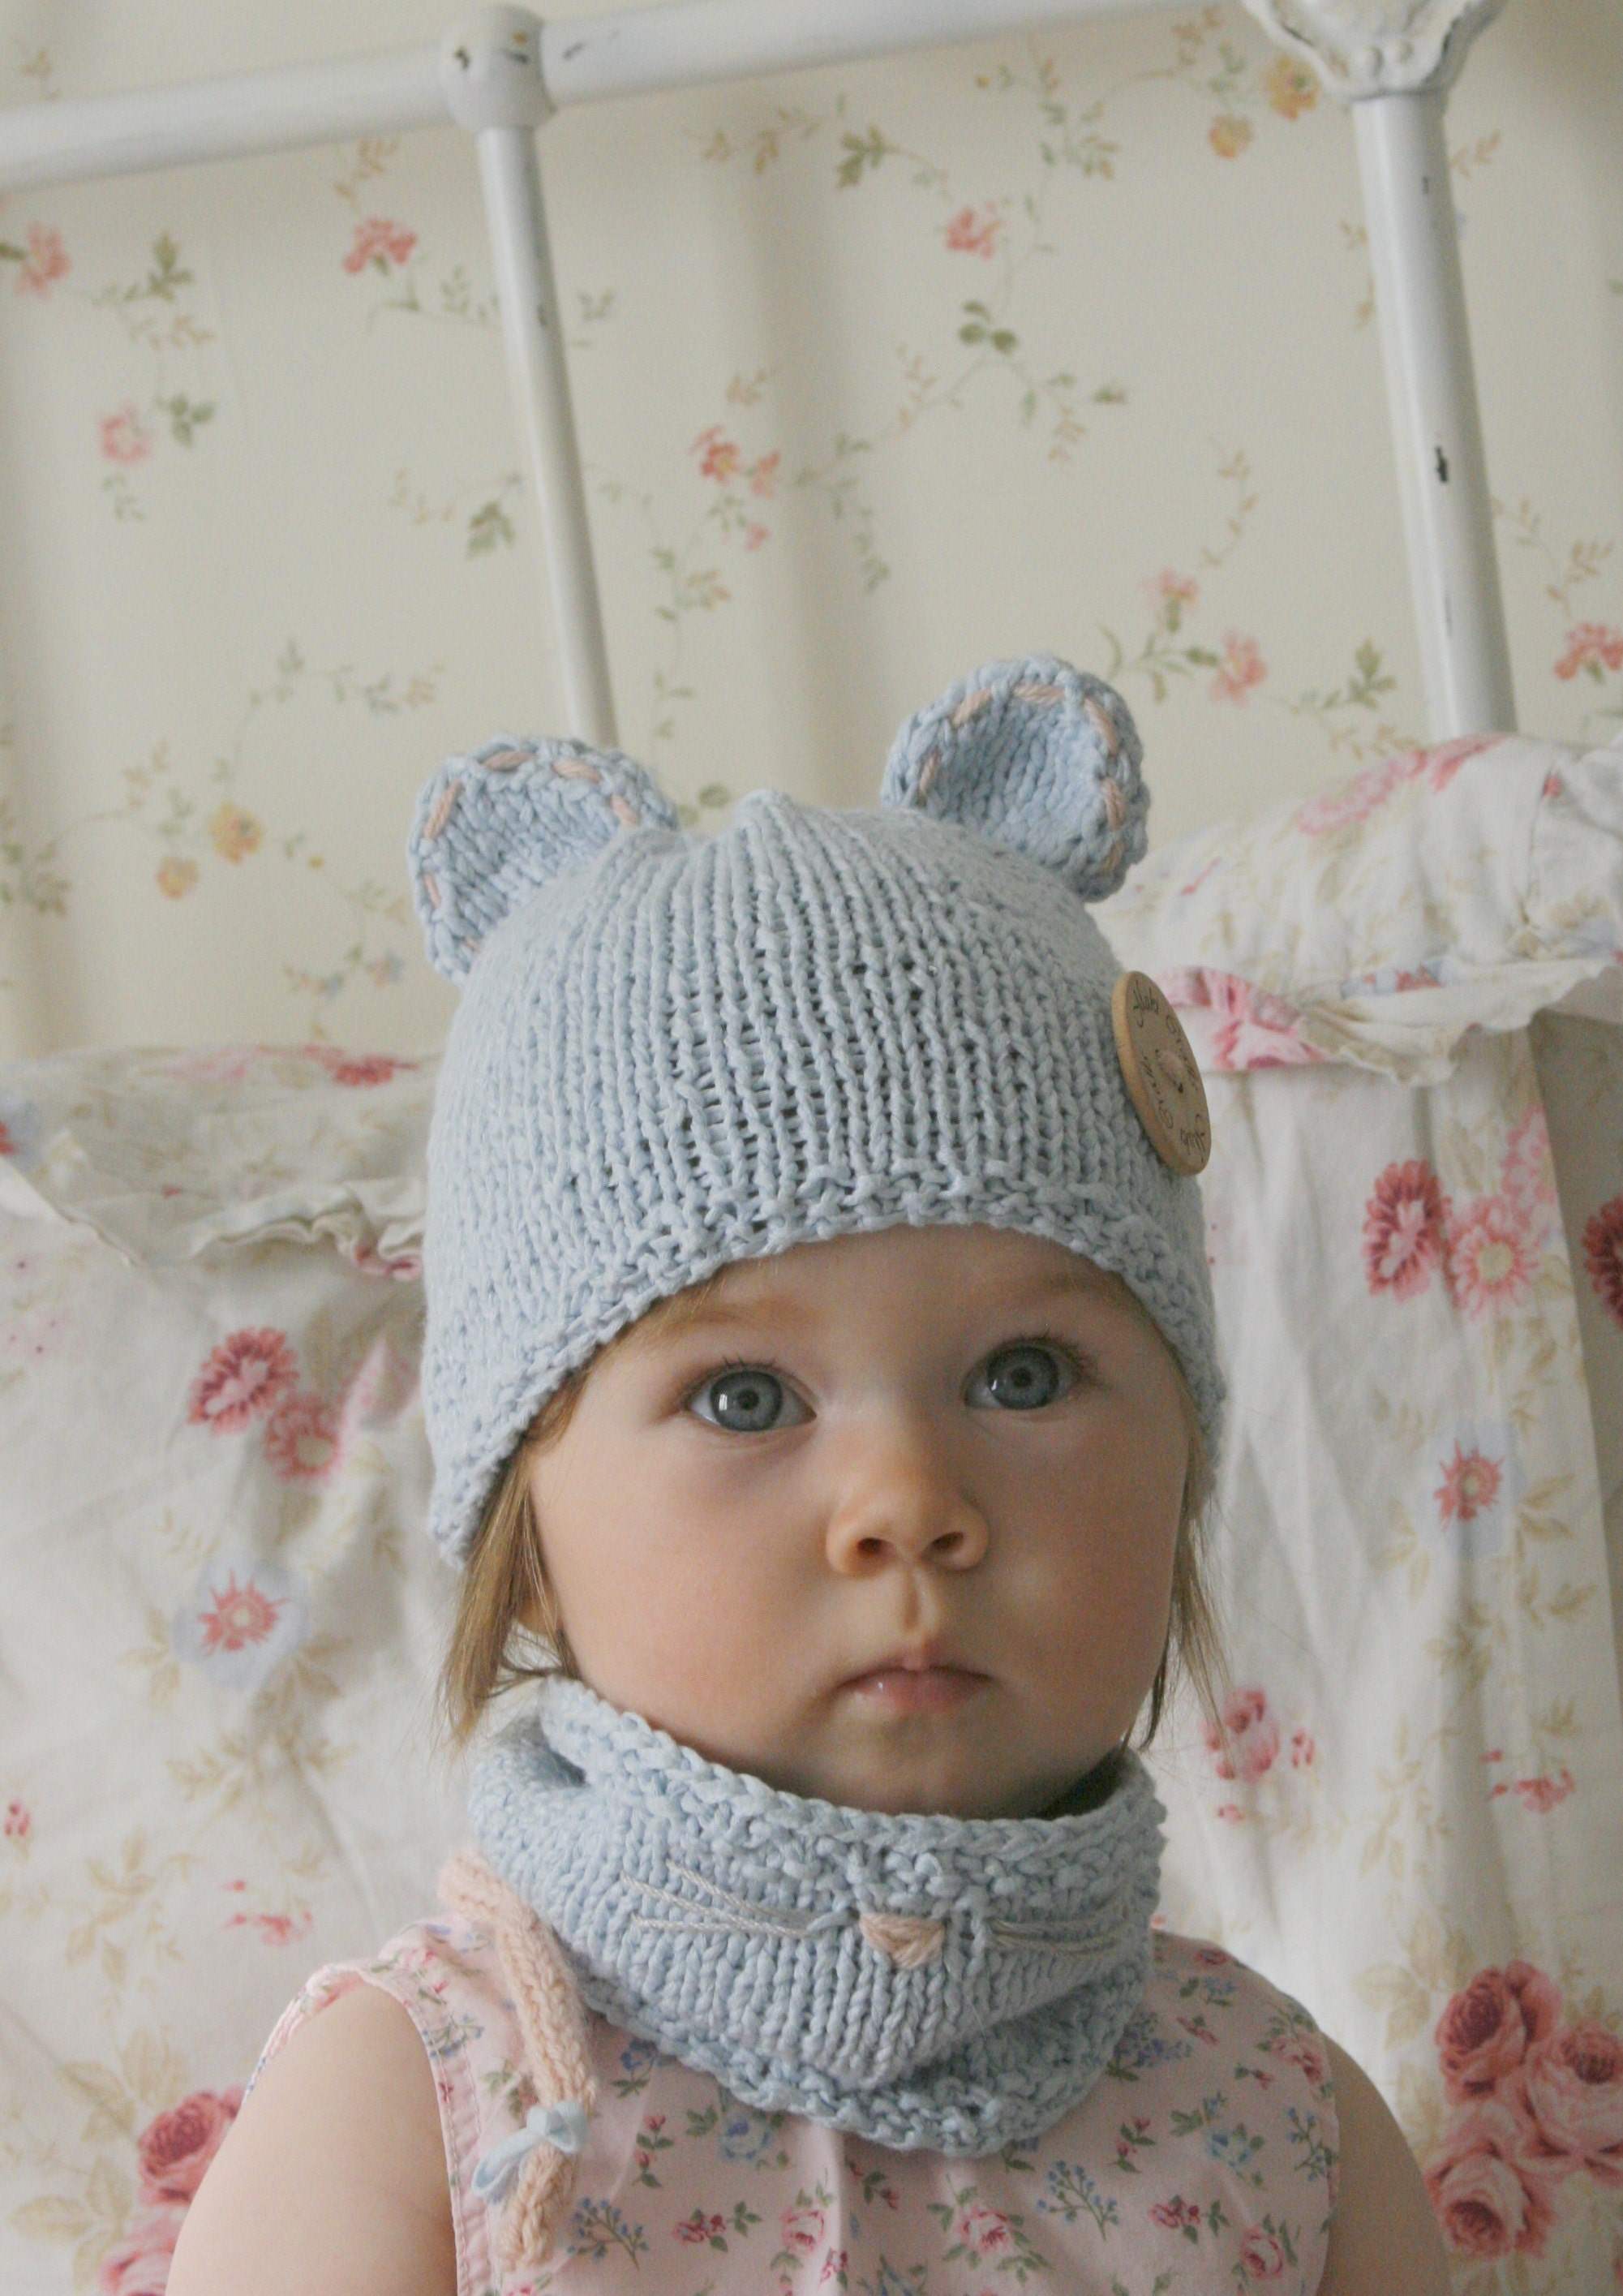 Free Knitting Pattern For Mouse Hat And Cowl Set In Kids Sizes